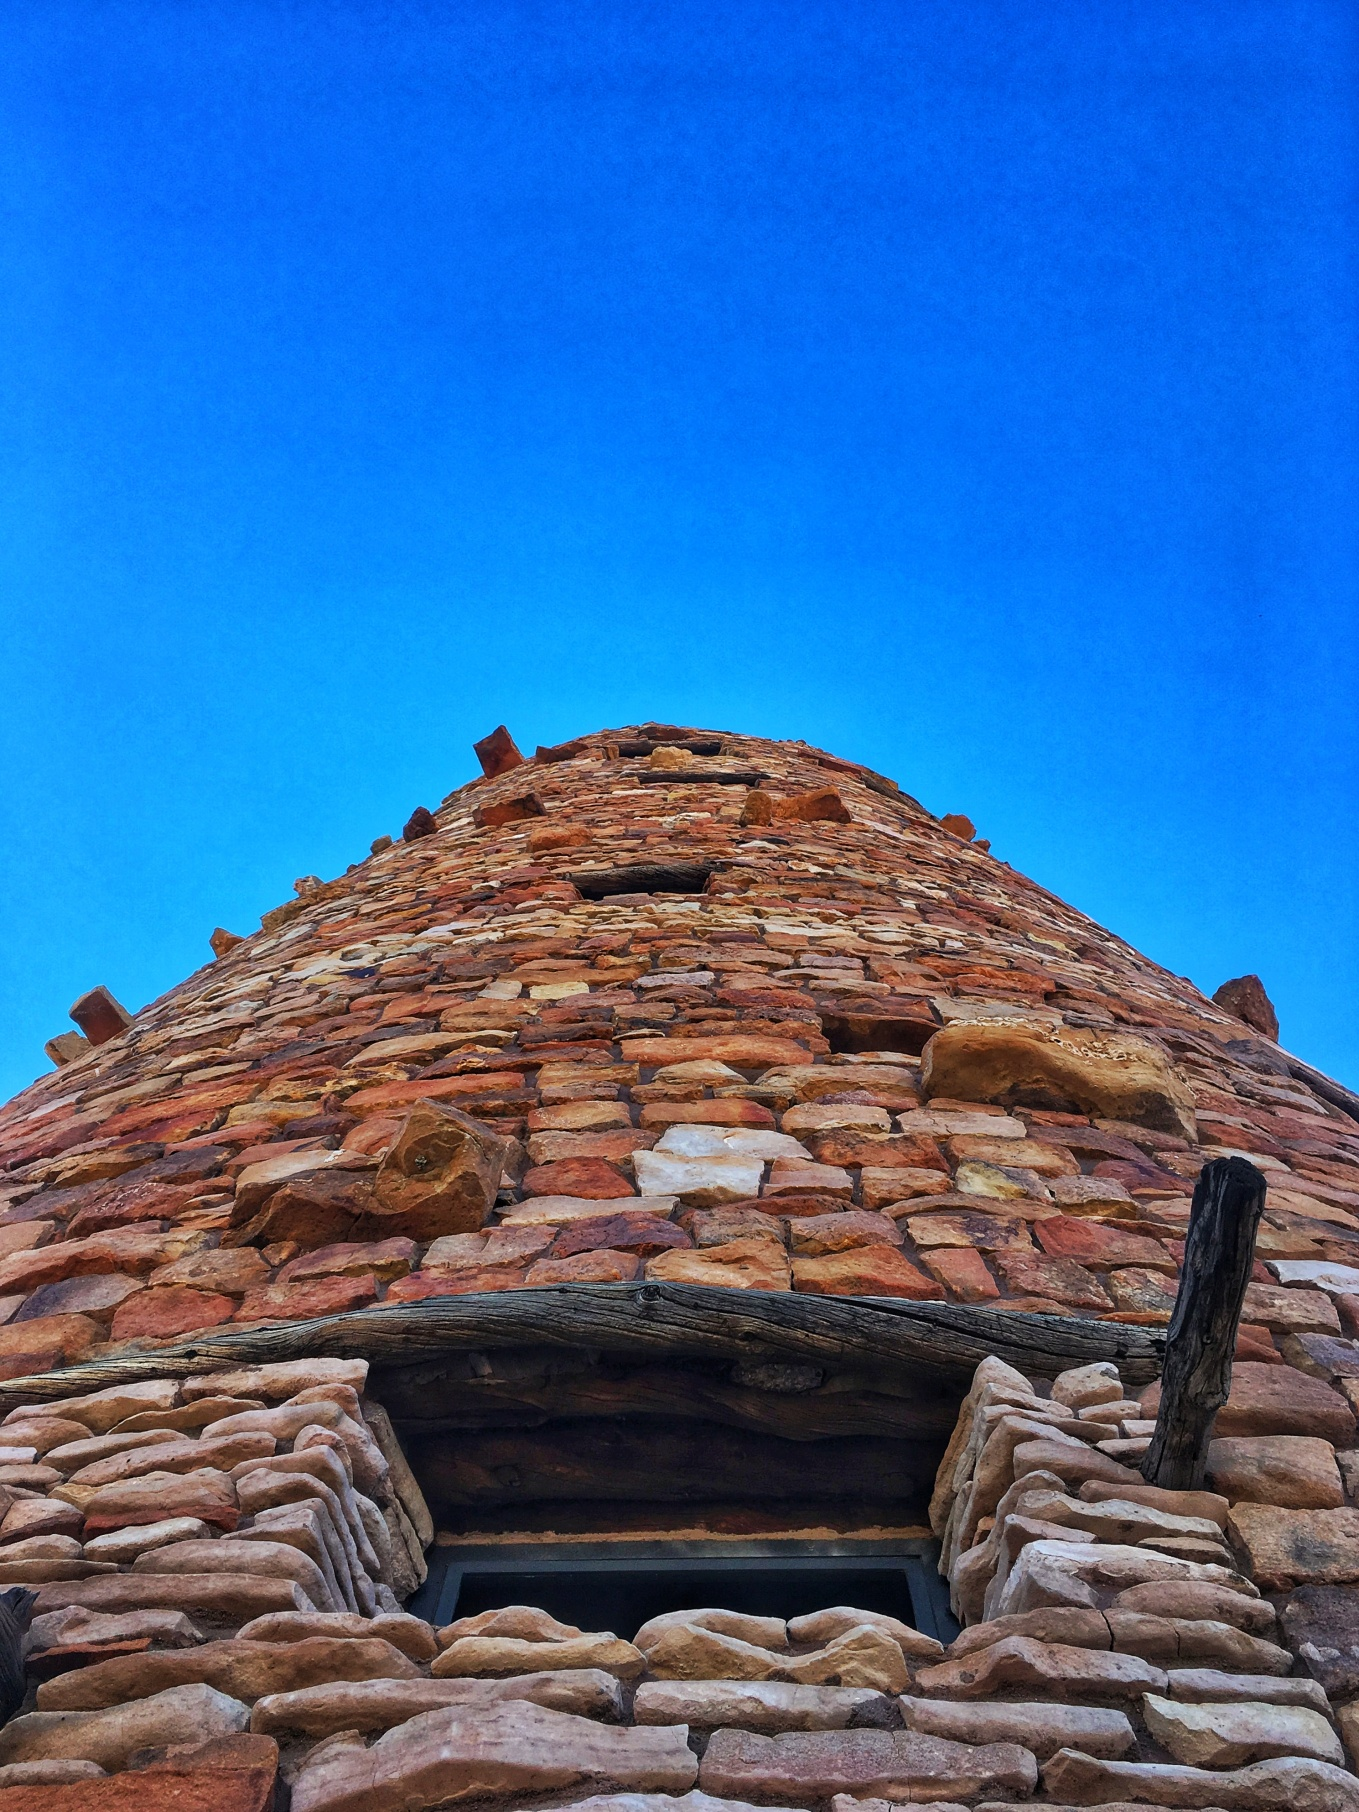 A close-up of the Desert Watchtower on the East Rim of the Grand Canyon